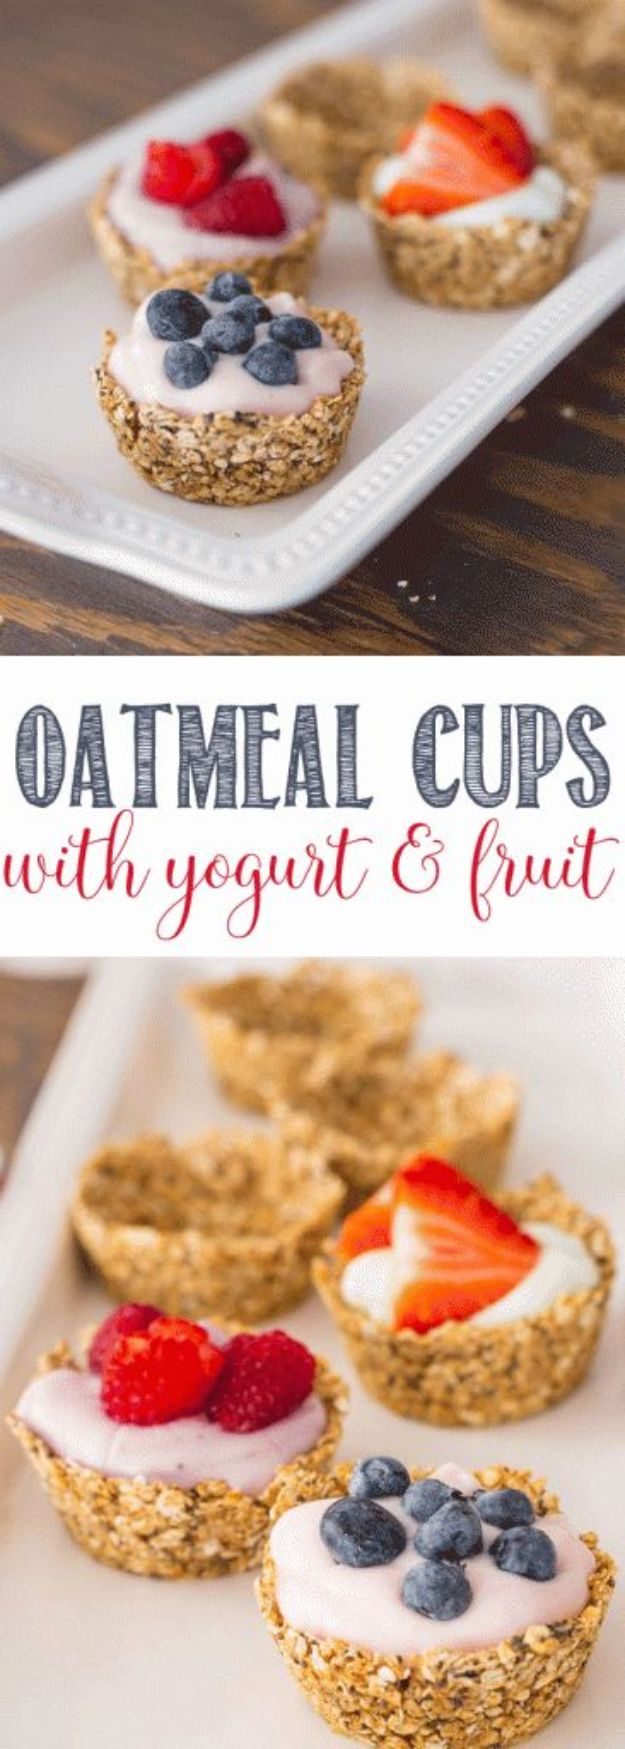 Best Brunch Recipes - Oatmeal Cups with Yogurt and Fruit - Eggs, Pancakes, Waffles, Casseroles, Vegetable Dishes and Side, Potato Recipe Ideas for Brunches - Serve A Crowd and Family with the versions of Eggs Benedict, Mimosas, Muffins and Pastries, Desserts - Make Ahead , Slow Cooler and Healthy Casserole Recipes #brunch #breakfast #recipes